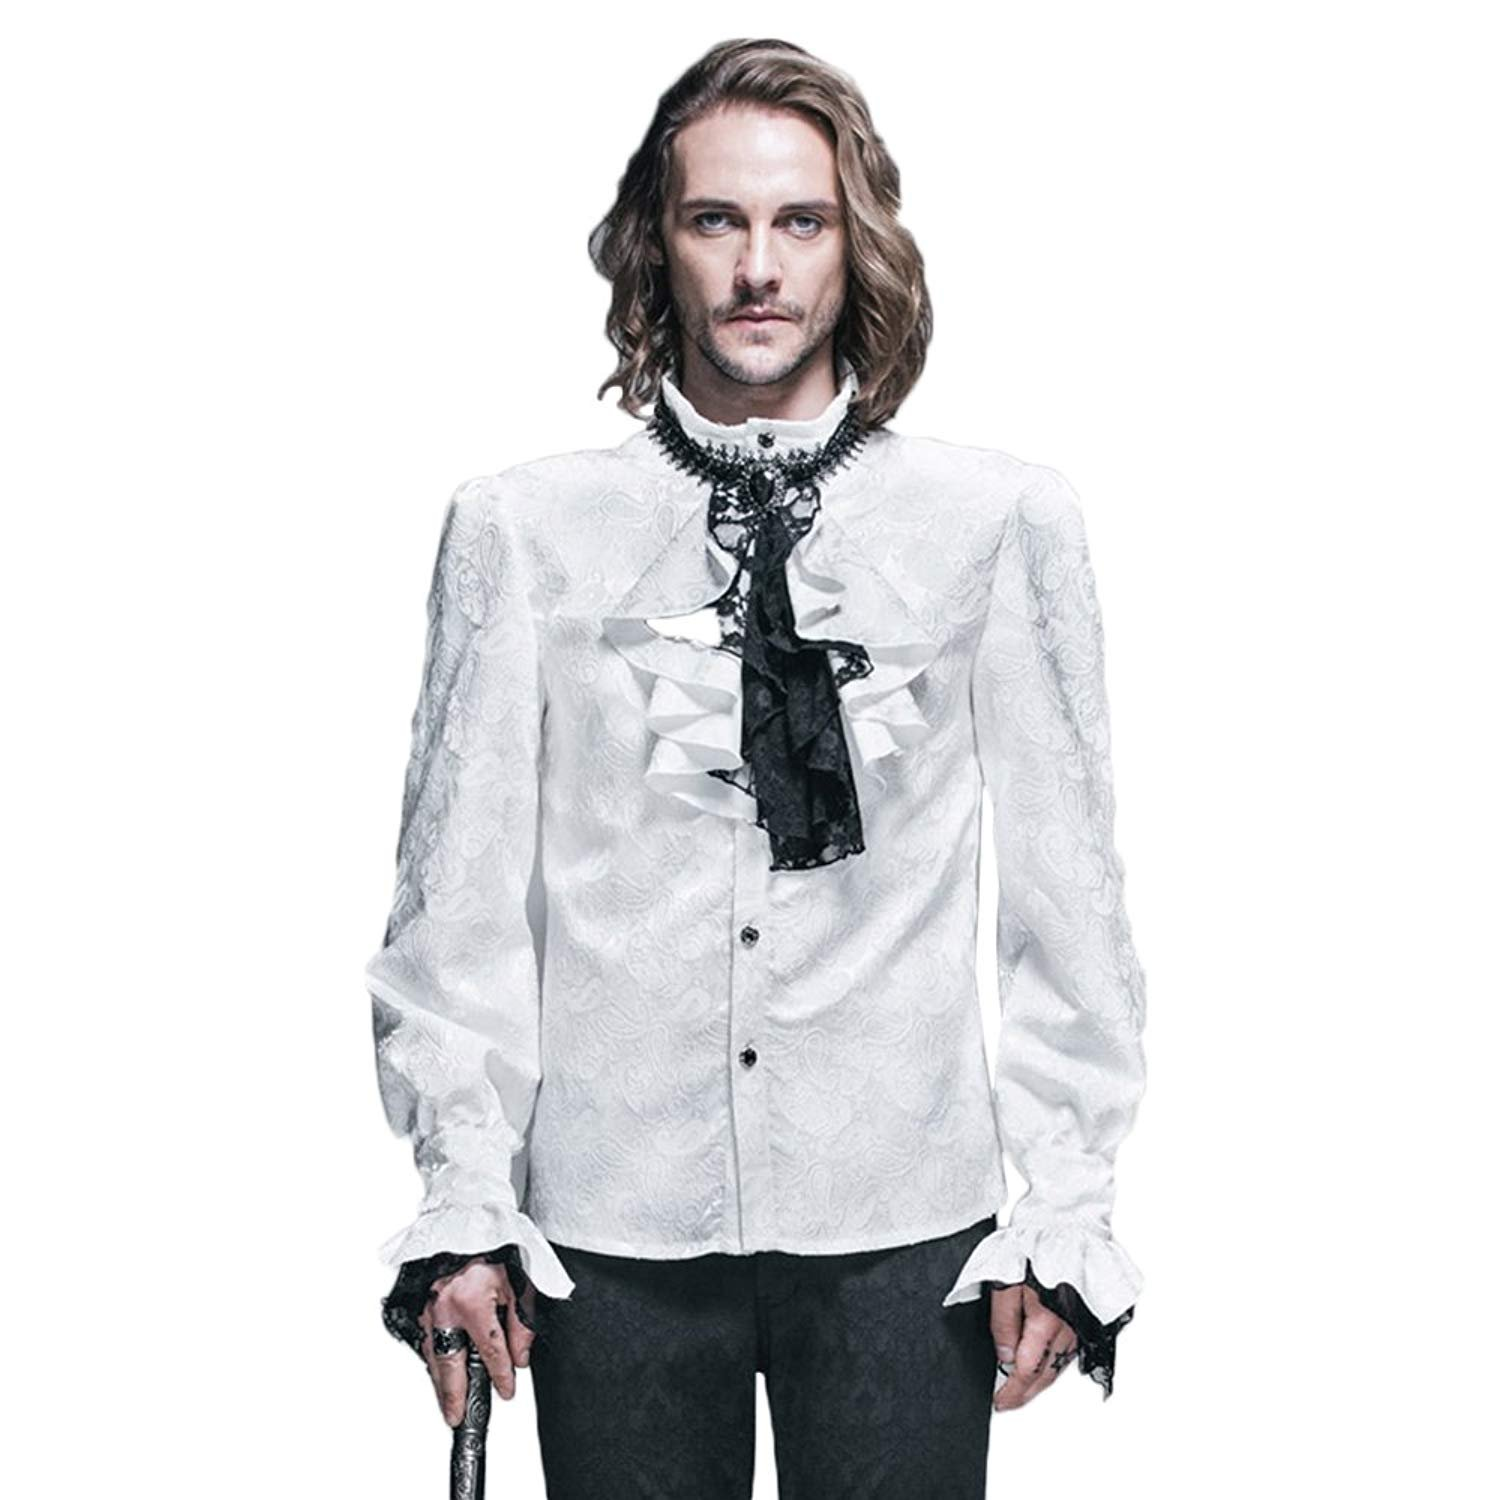 Devil Fashion Steampunk Men Formal Shirts Gothic Victorian Style Wedding Shirts Blouses 4XL